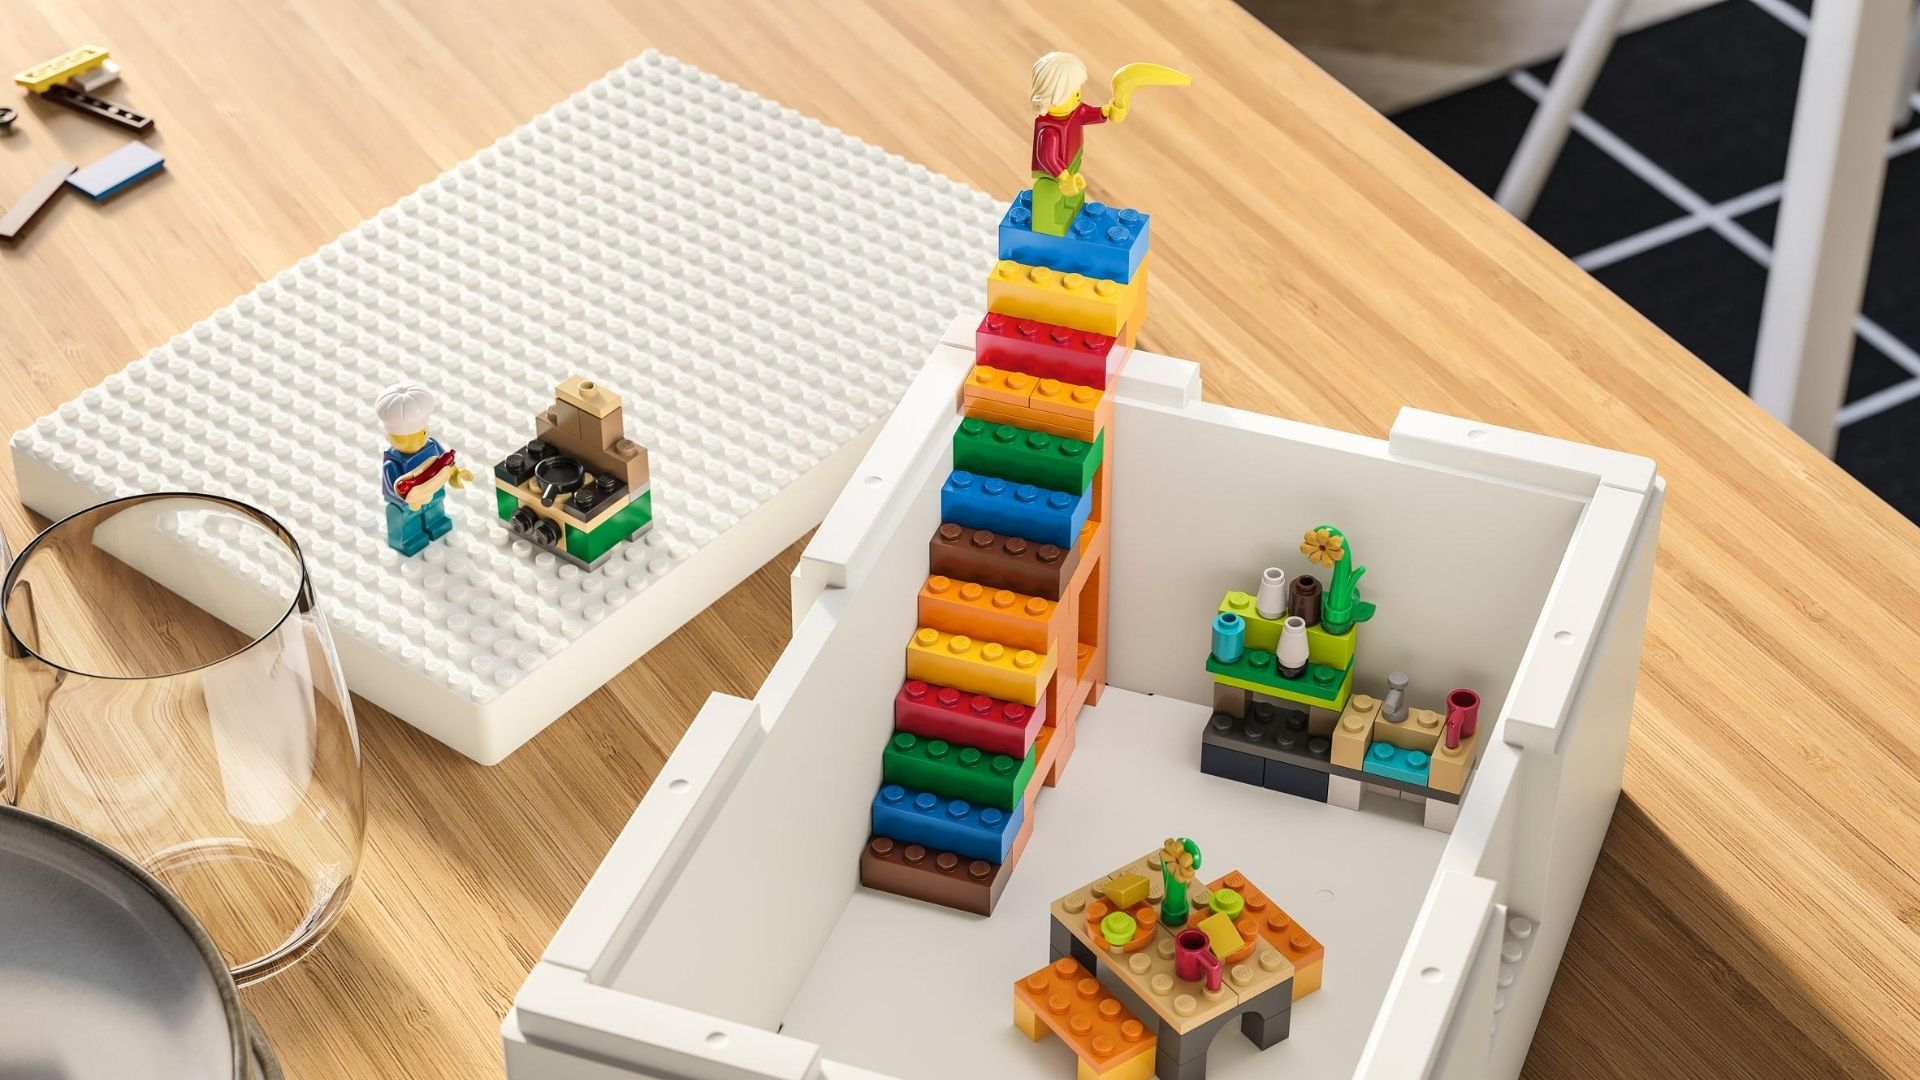 Image of IKEA's collaboration with LEGO. A white box containing multicoloured LEGO blocks and men, on a wooden table with a glass on the left hand side.